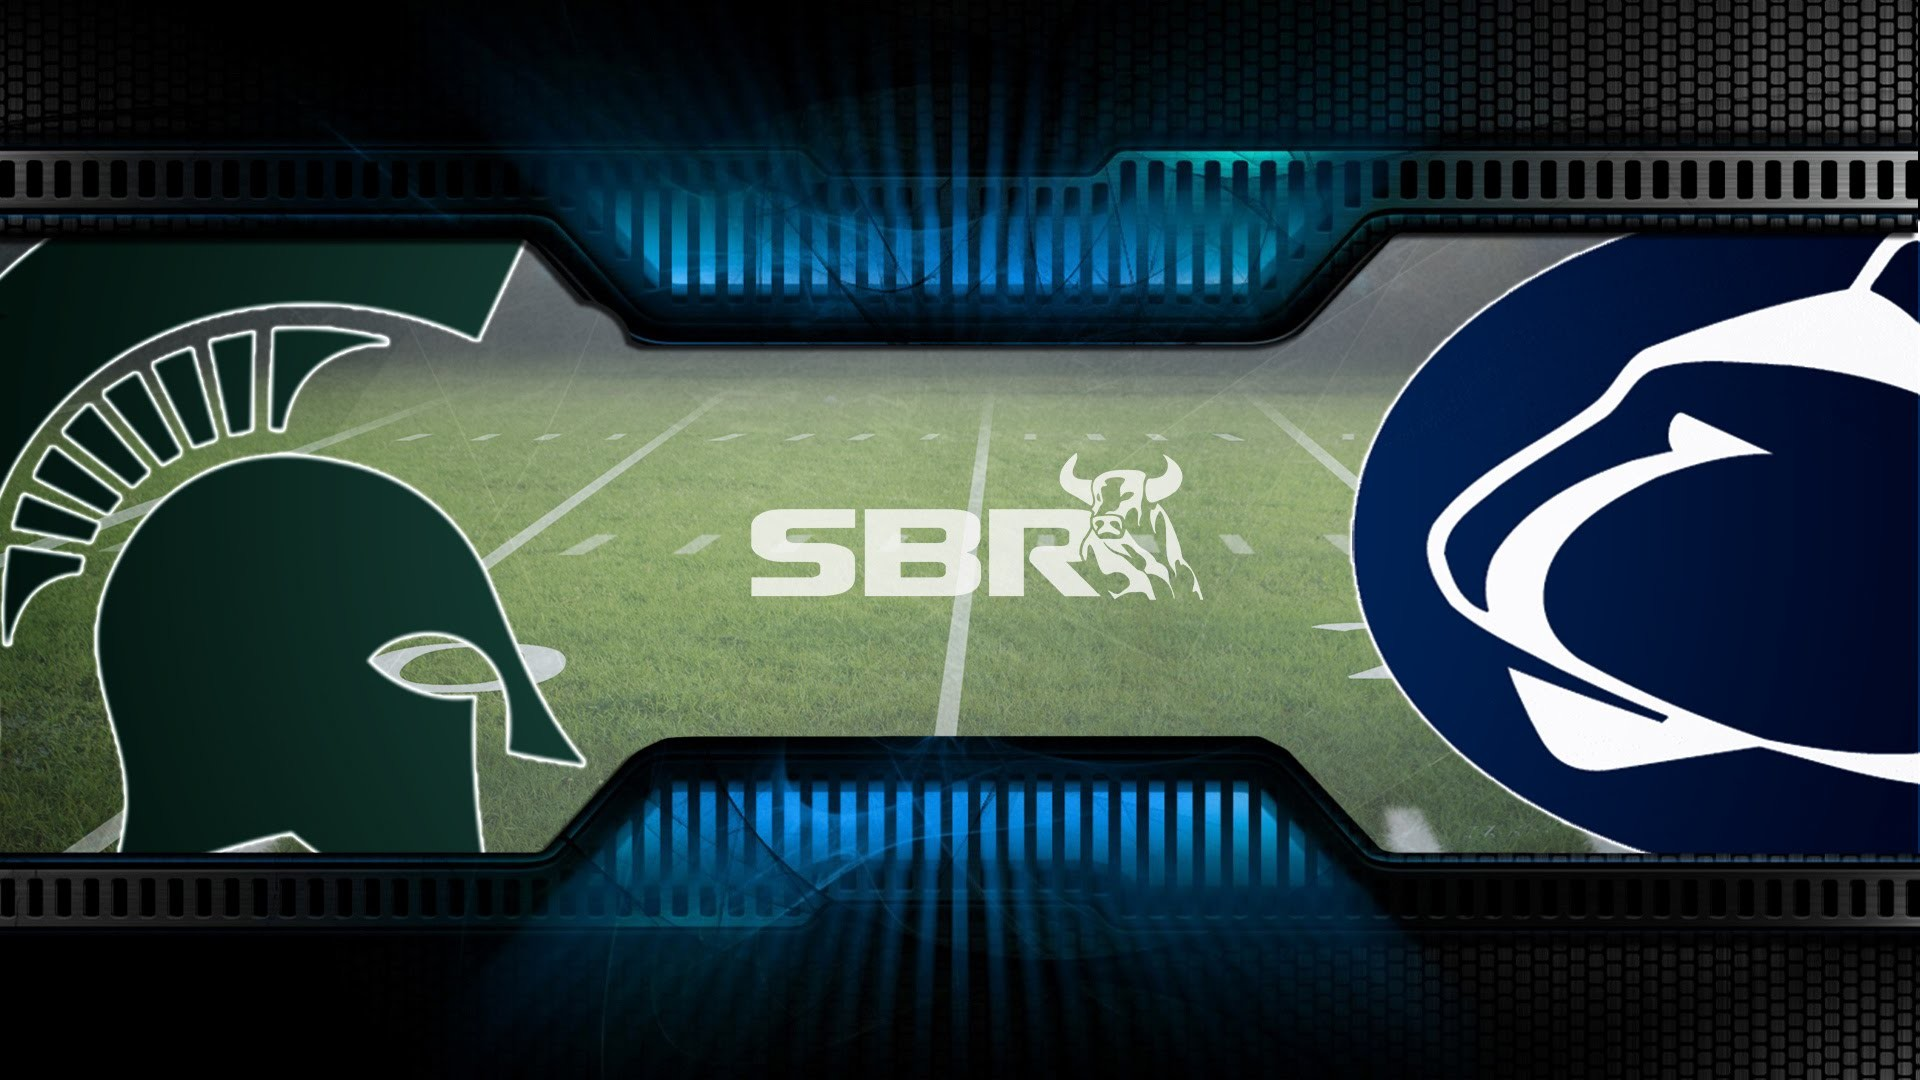 1920x1080 The Tradition of Land Grant Trophy: Michigan State vs Penn State Rivalry